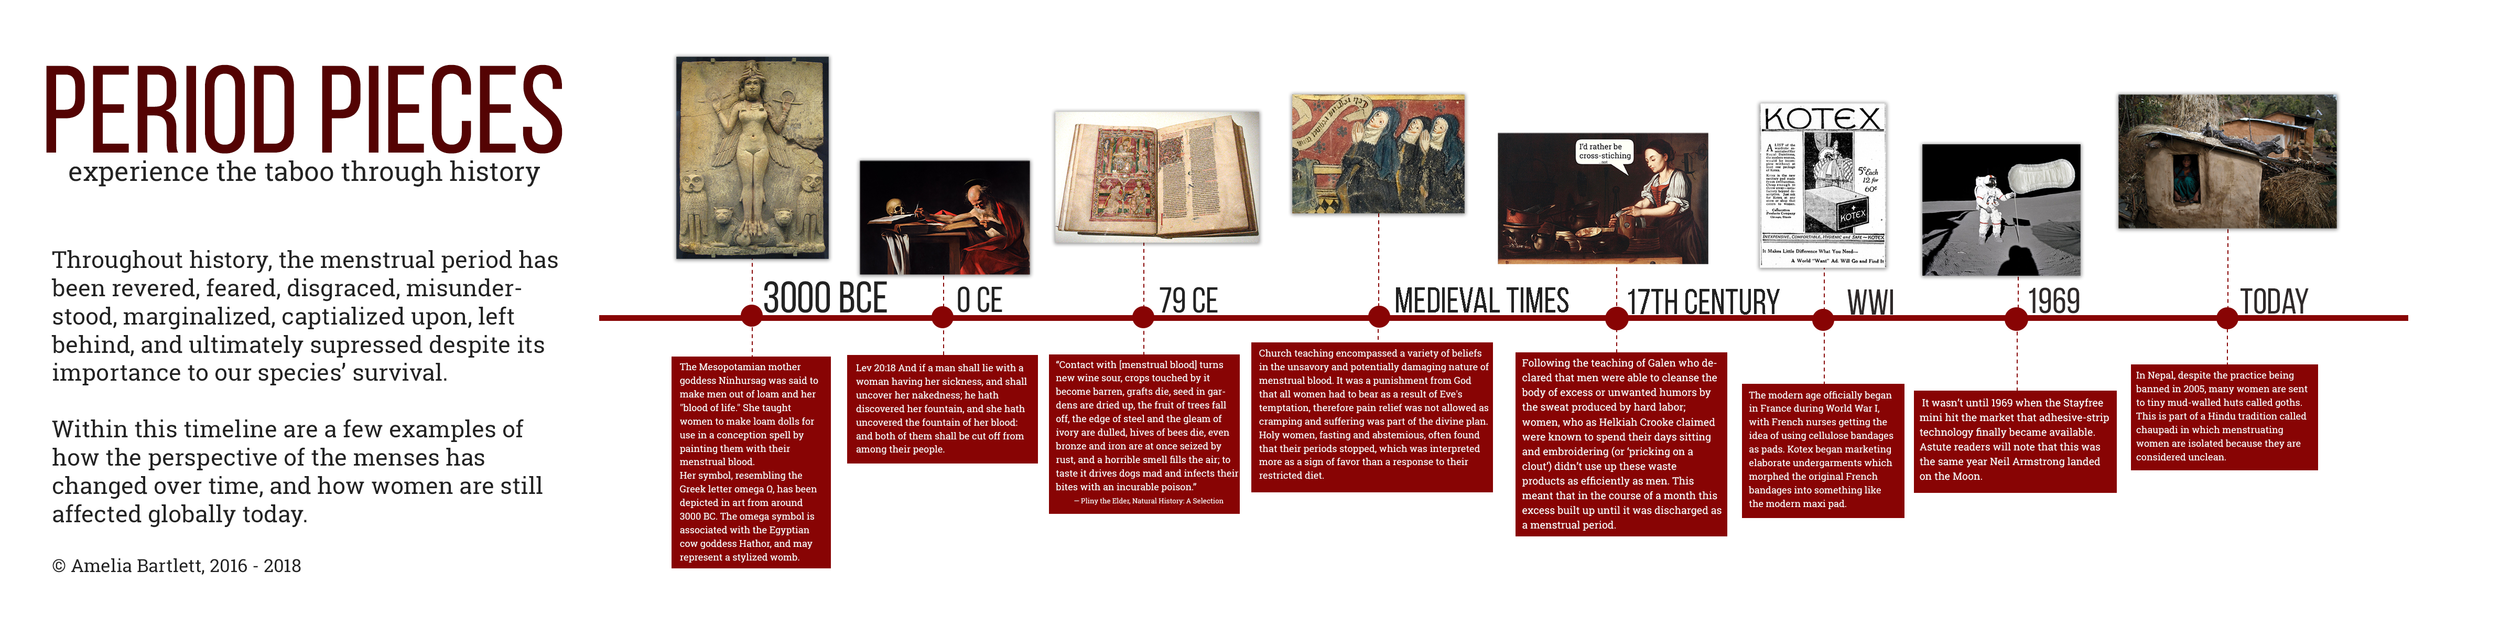 Period Pieces timeline, created for the awareness-focused fundraiser Celebrating the Feminine Mystique. This post was printed at 2ft x 8ft long and presented at the event to 250 guests.